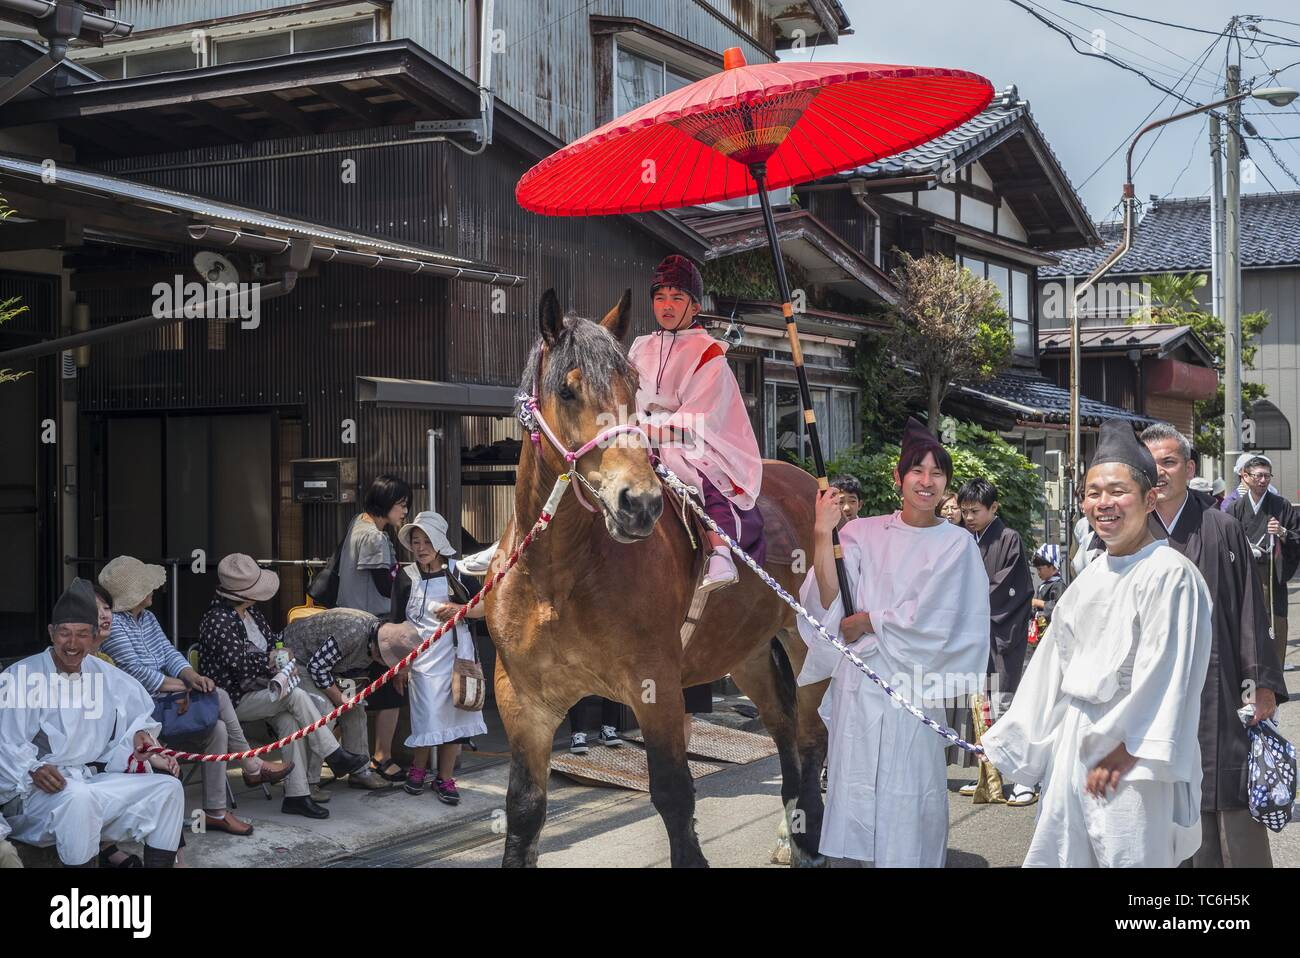 Oyama, Japan. 05th June, 2019. Oyama Inu Matsuri (Dog Festival) June 5th. The festival is based on a 300 year old legend that takes place in the 1500 year old Sugio Jinja Shrine in Oyama. Legend has it that the shrine was tormented by demons who demanded the sacrifice of a young girl every year. The villagers complied to avoid famine and torment. A simple dog named Mekke Inu finally killed all the demons, but in the process became mortally wounded and died. The festival commemorates the heroic dog with a parade around the town ending at the shrine. Credit: ZUMA Press, Inc./Alamy Live News - Stock Image